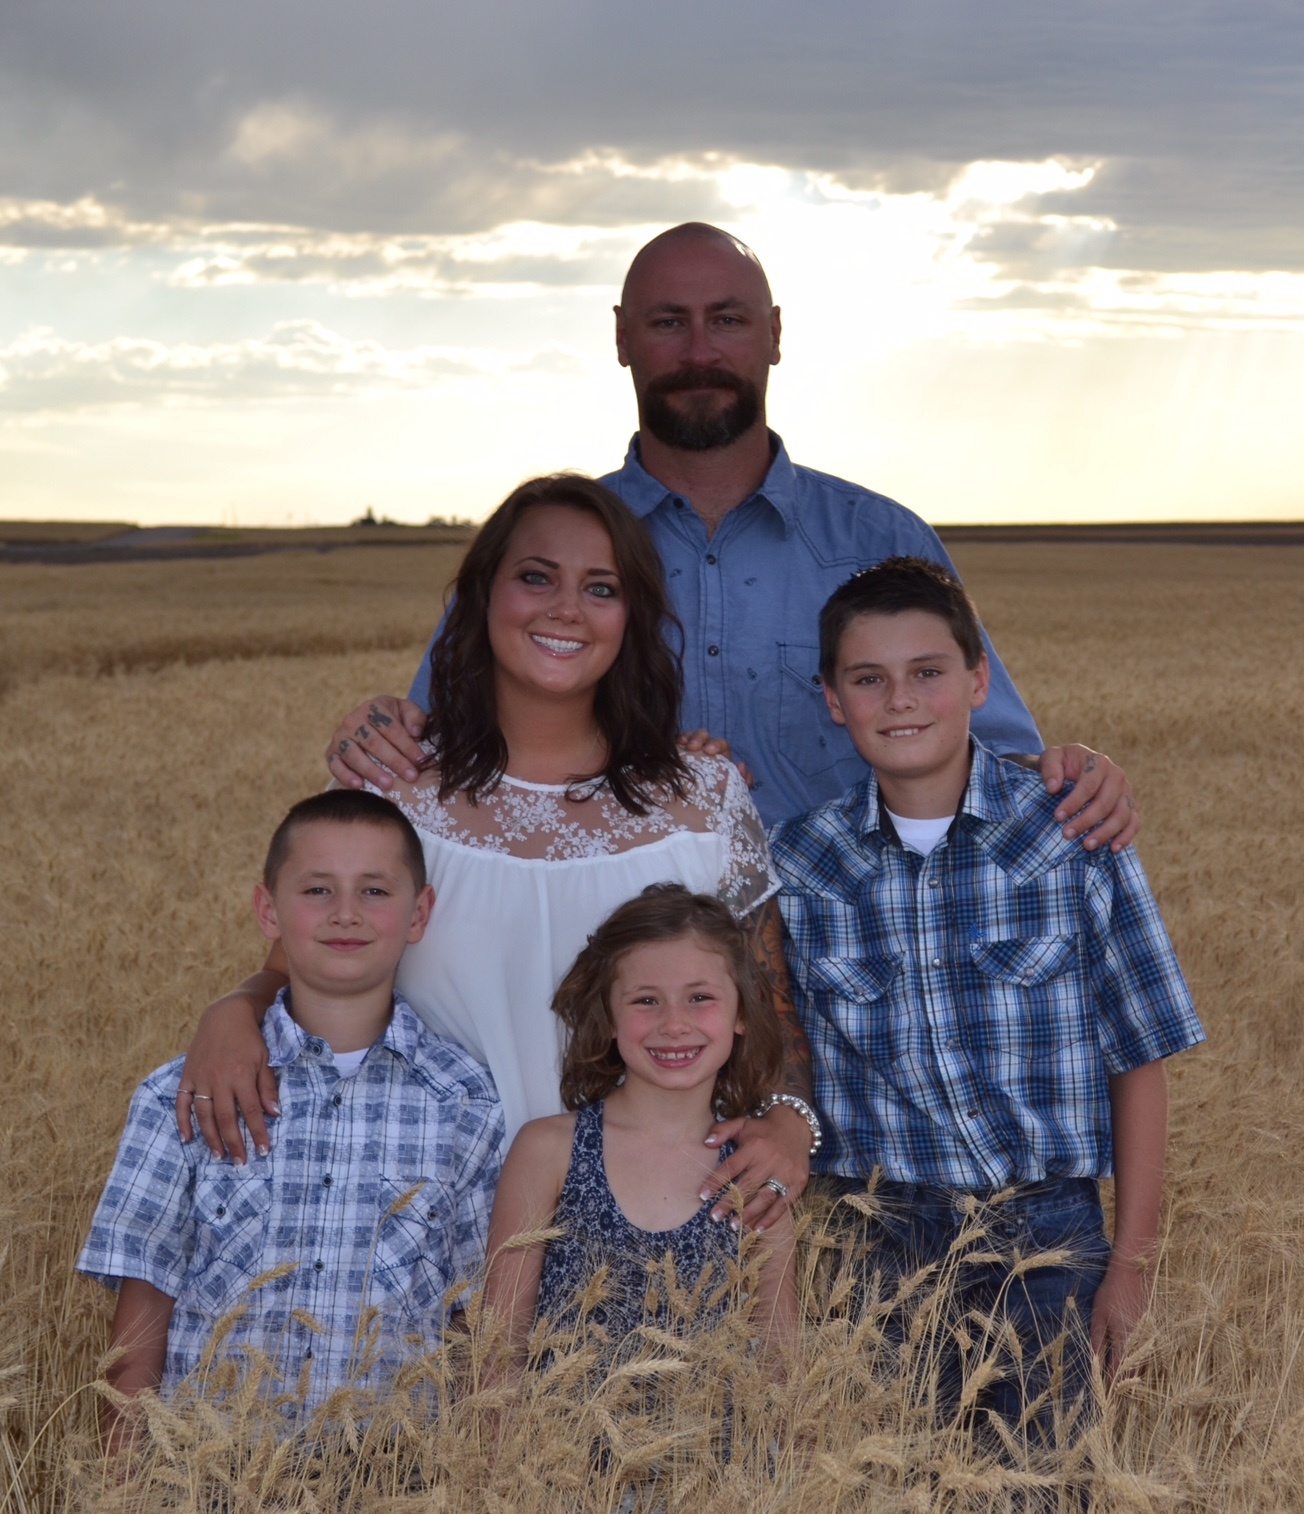 The Jessen family on their farm